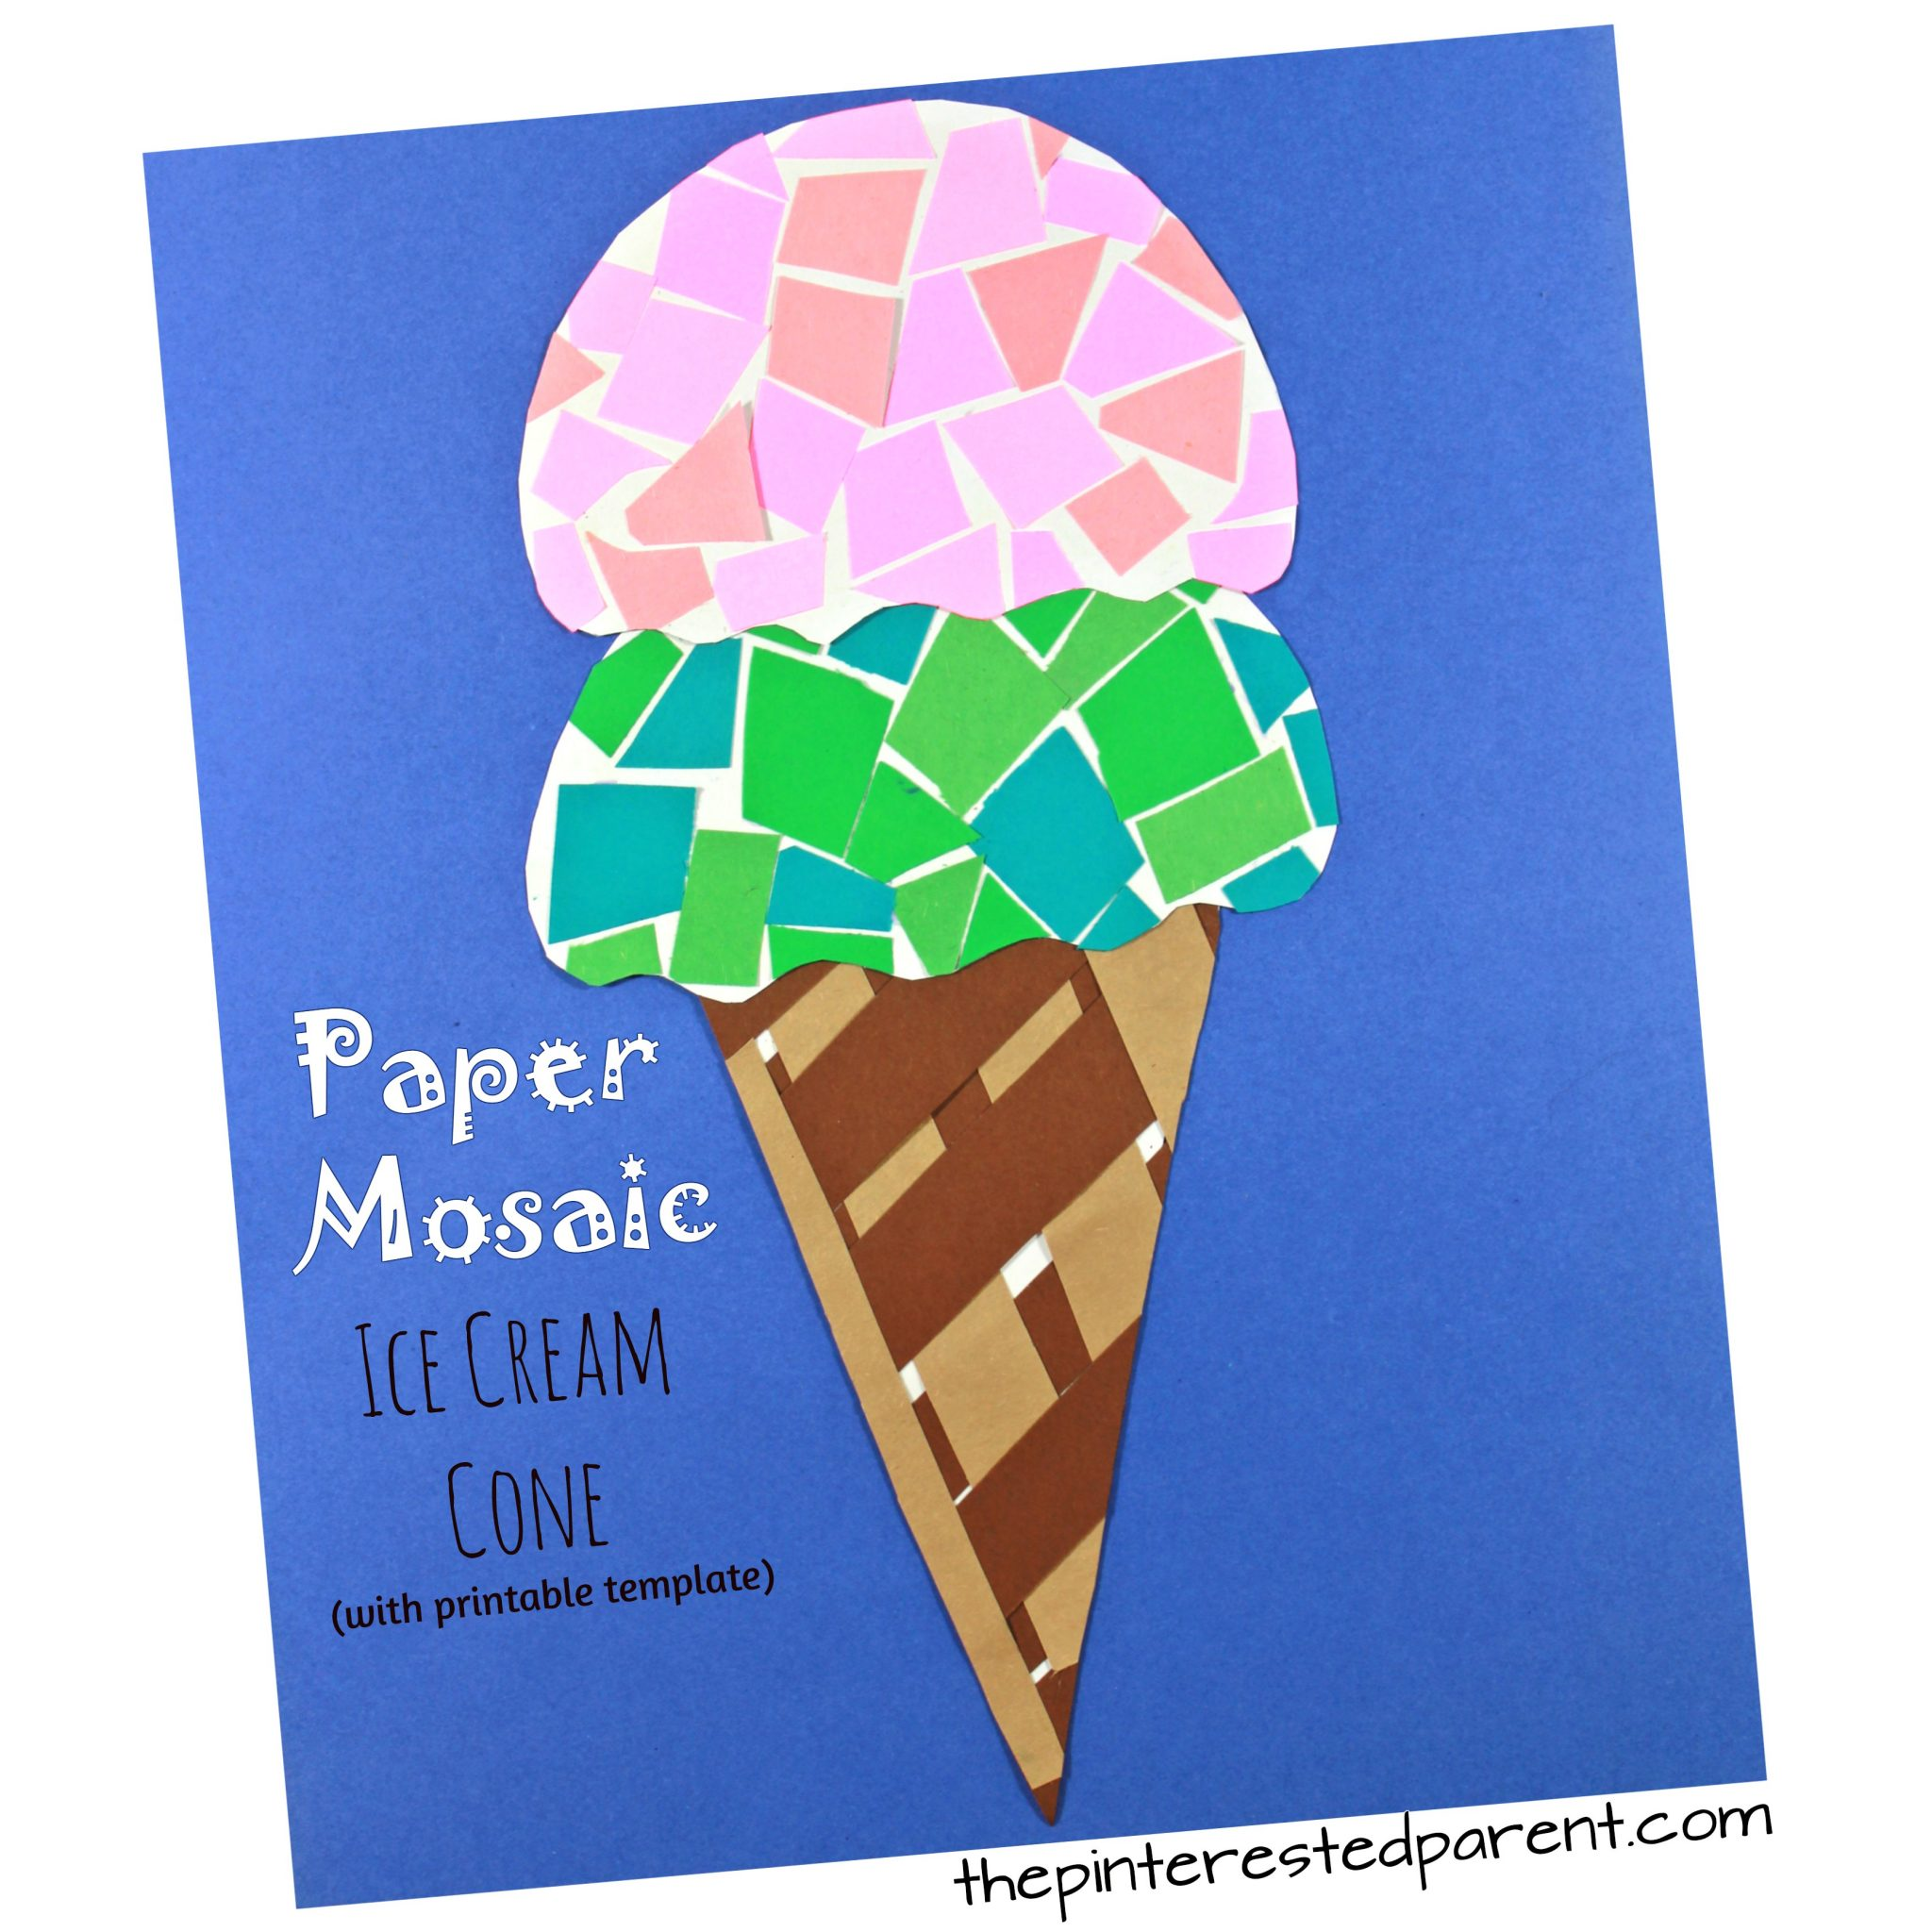 graphic relating to Free Printable Paper Crafts called Printable Paper Mosaic Ice Product Cone The Pinterested Father or mother